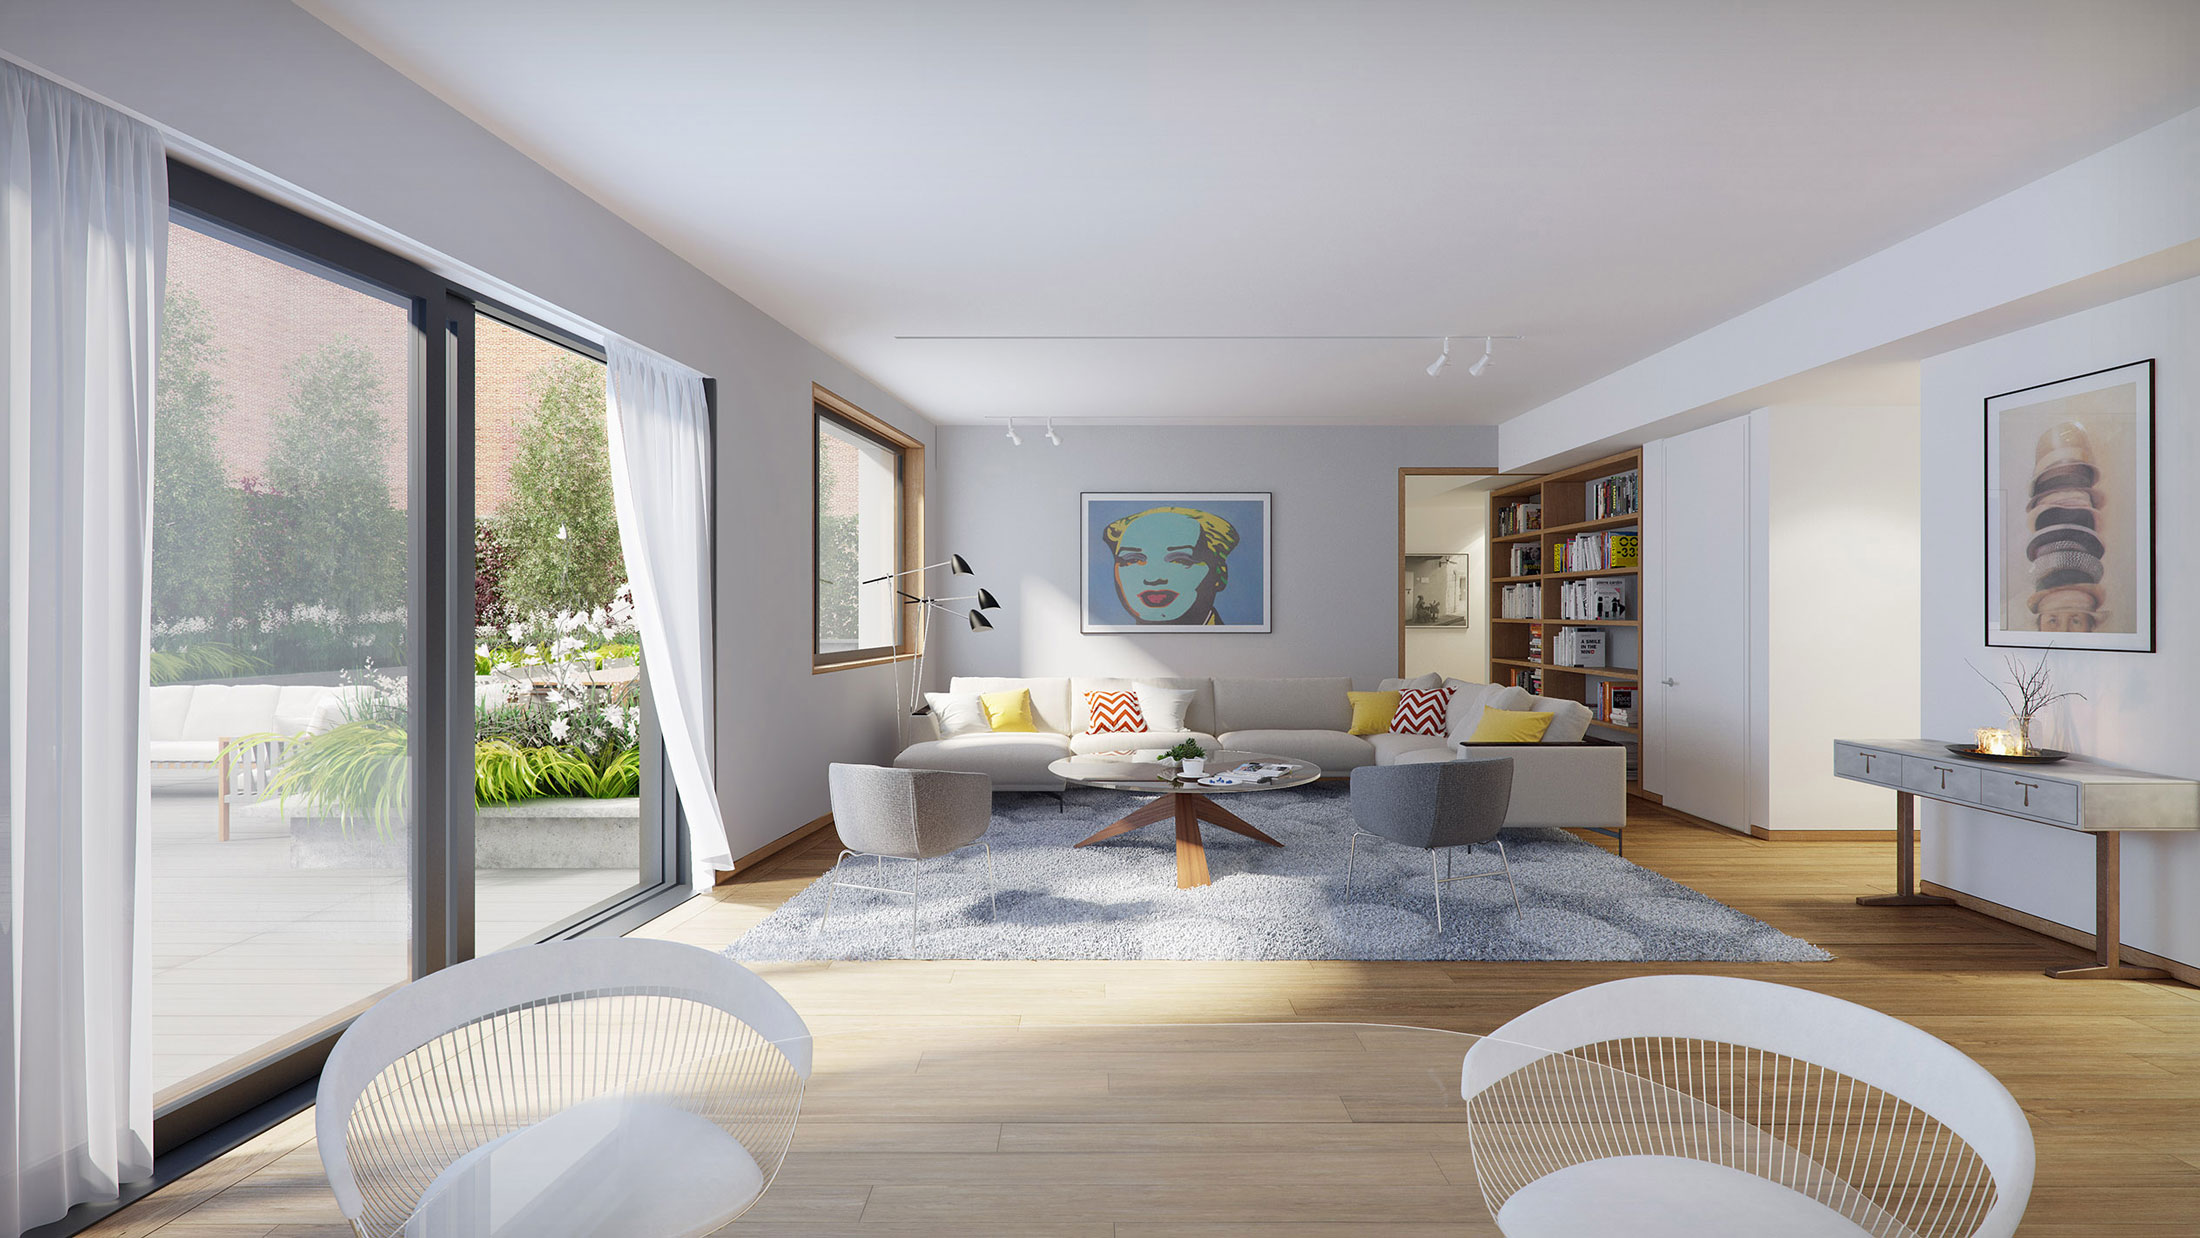 Architectural Rendering of the interior of the 210 Pacific Street project located in Brooklyn, New York